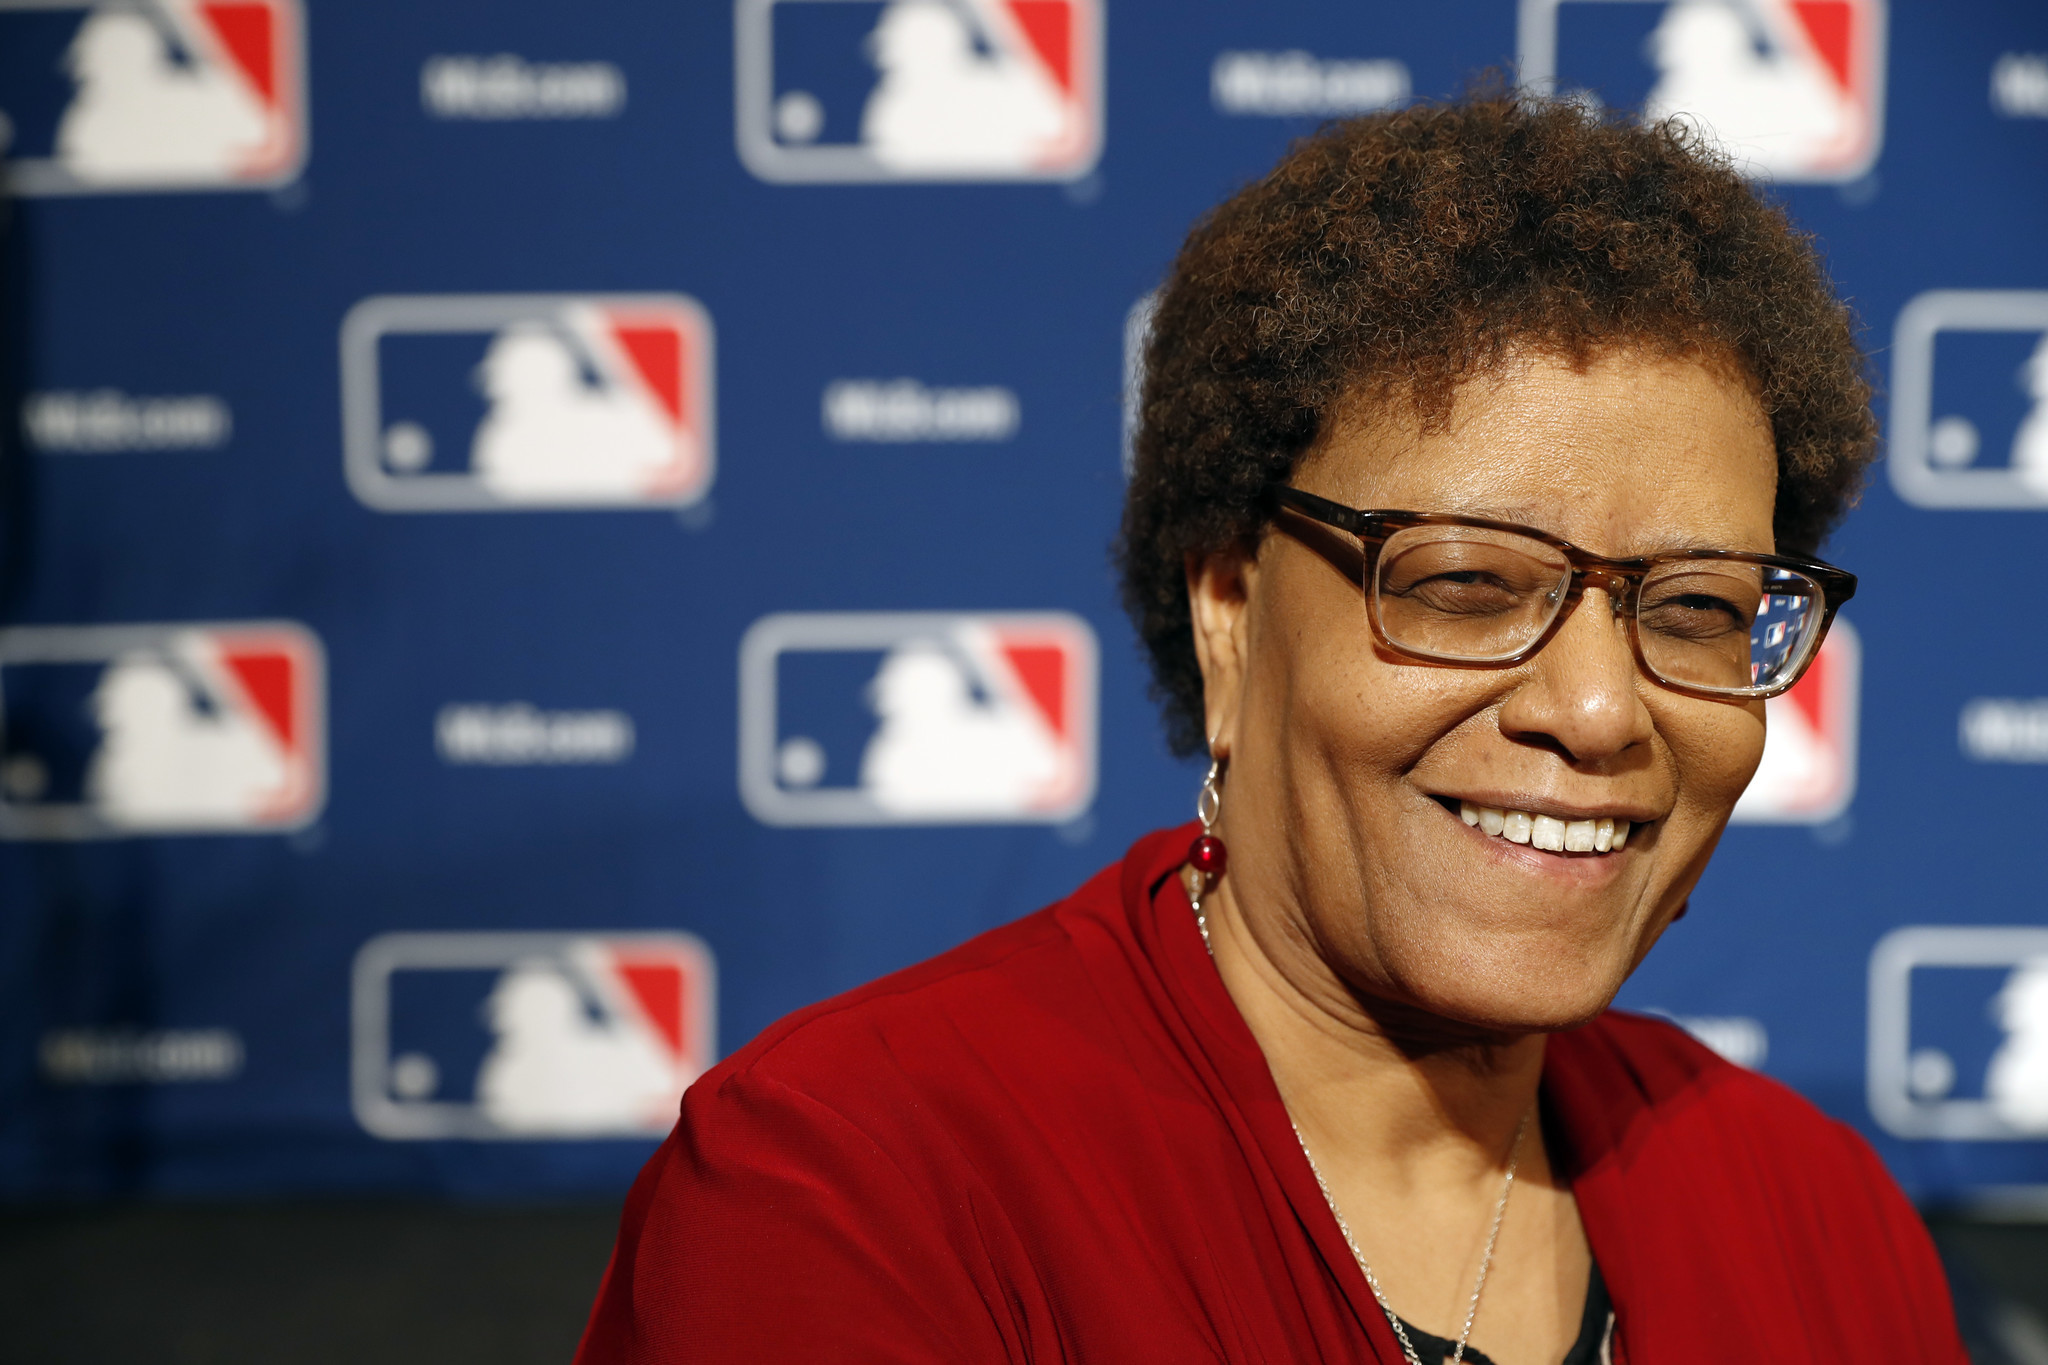 bal-claire-smith-becomes-the-first-female-baseball-writer-to-win-bbwaa-s-prestigious-spink-award-20161206.jpg